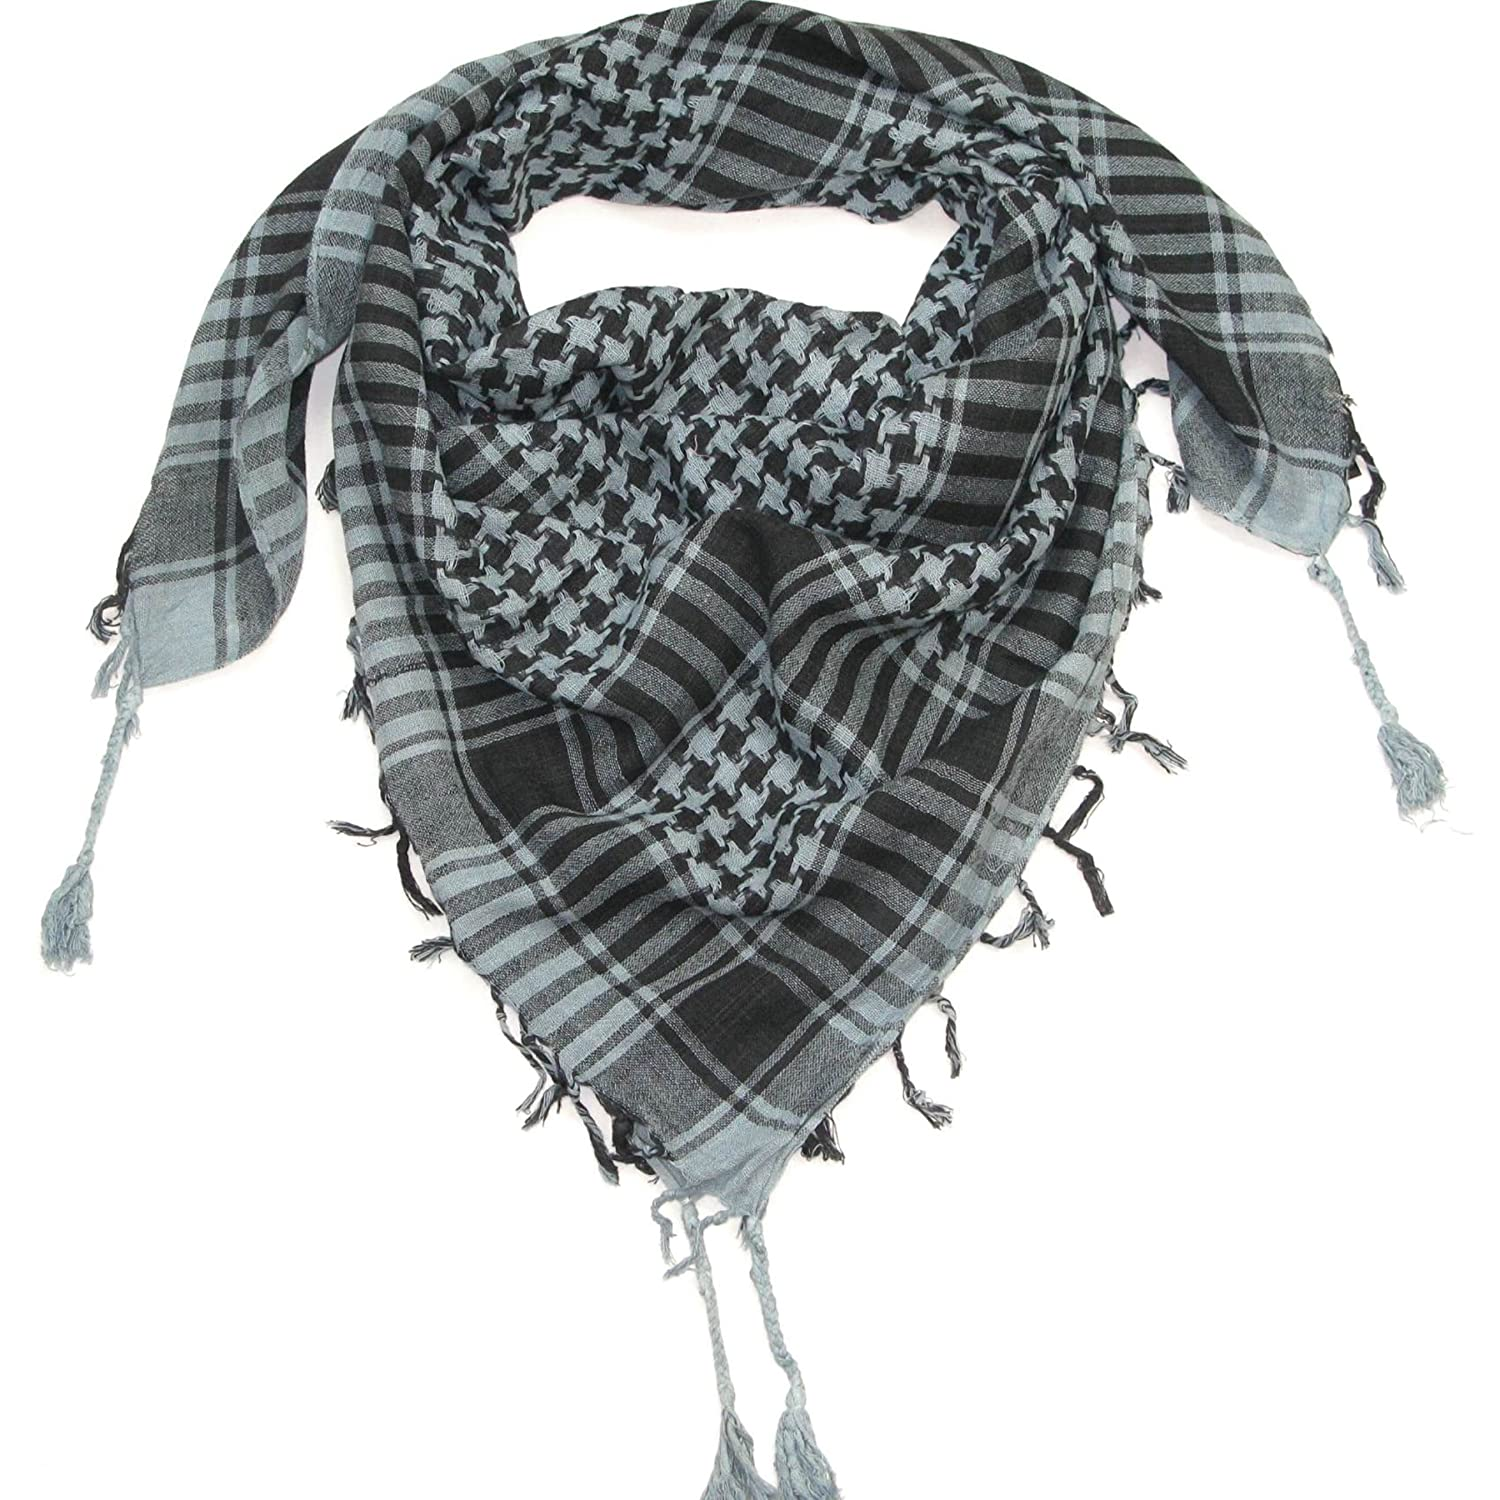 Scarf arafat how to wear new photo